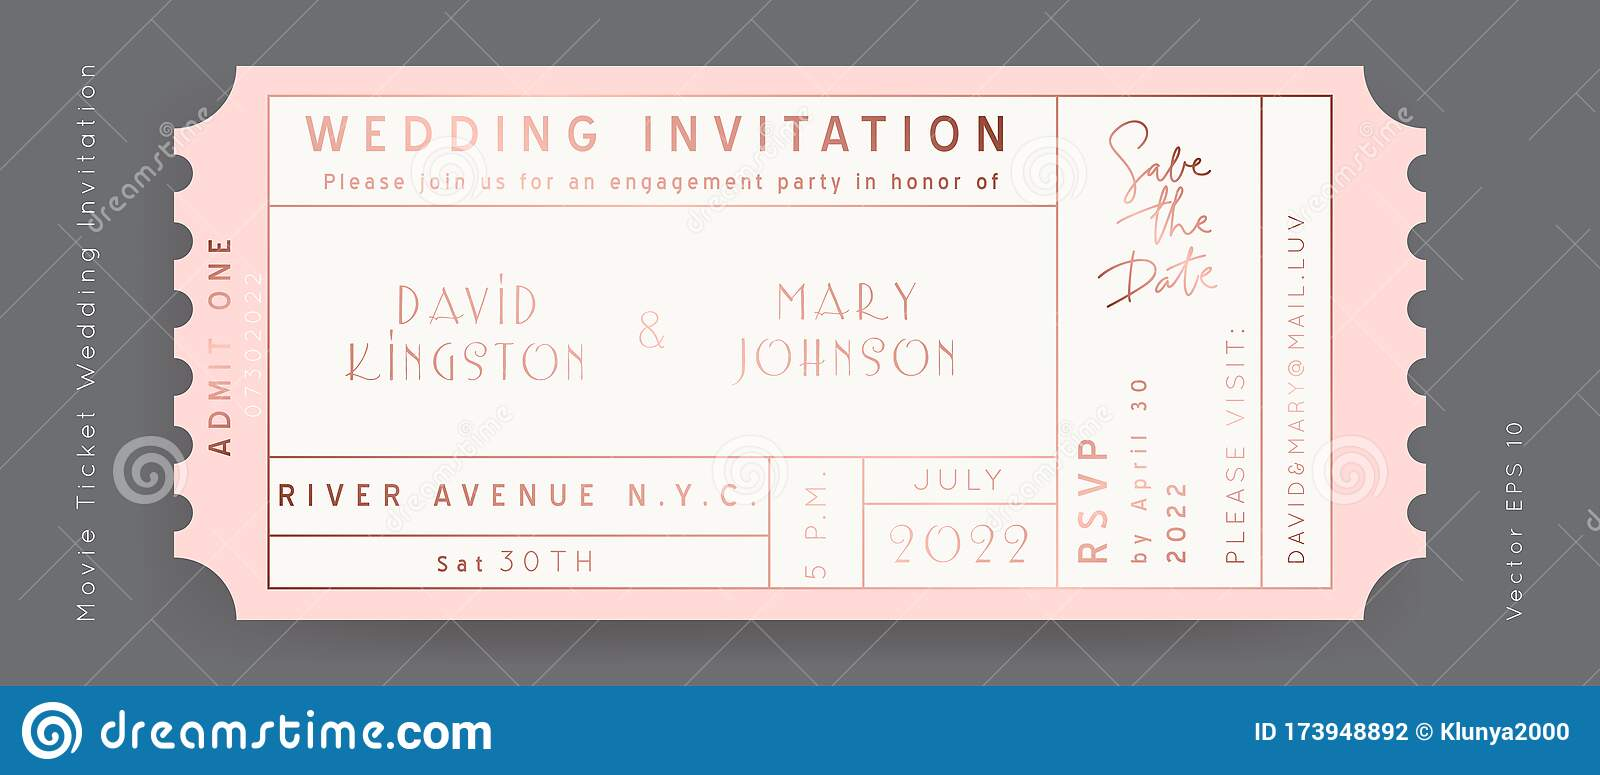 Movie Wedding Ticket Vector Stock Vector Illustration Of Golden Concert 173948892